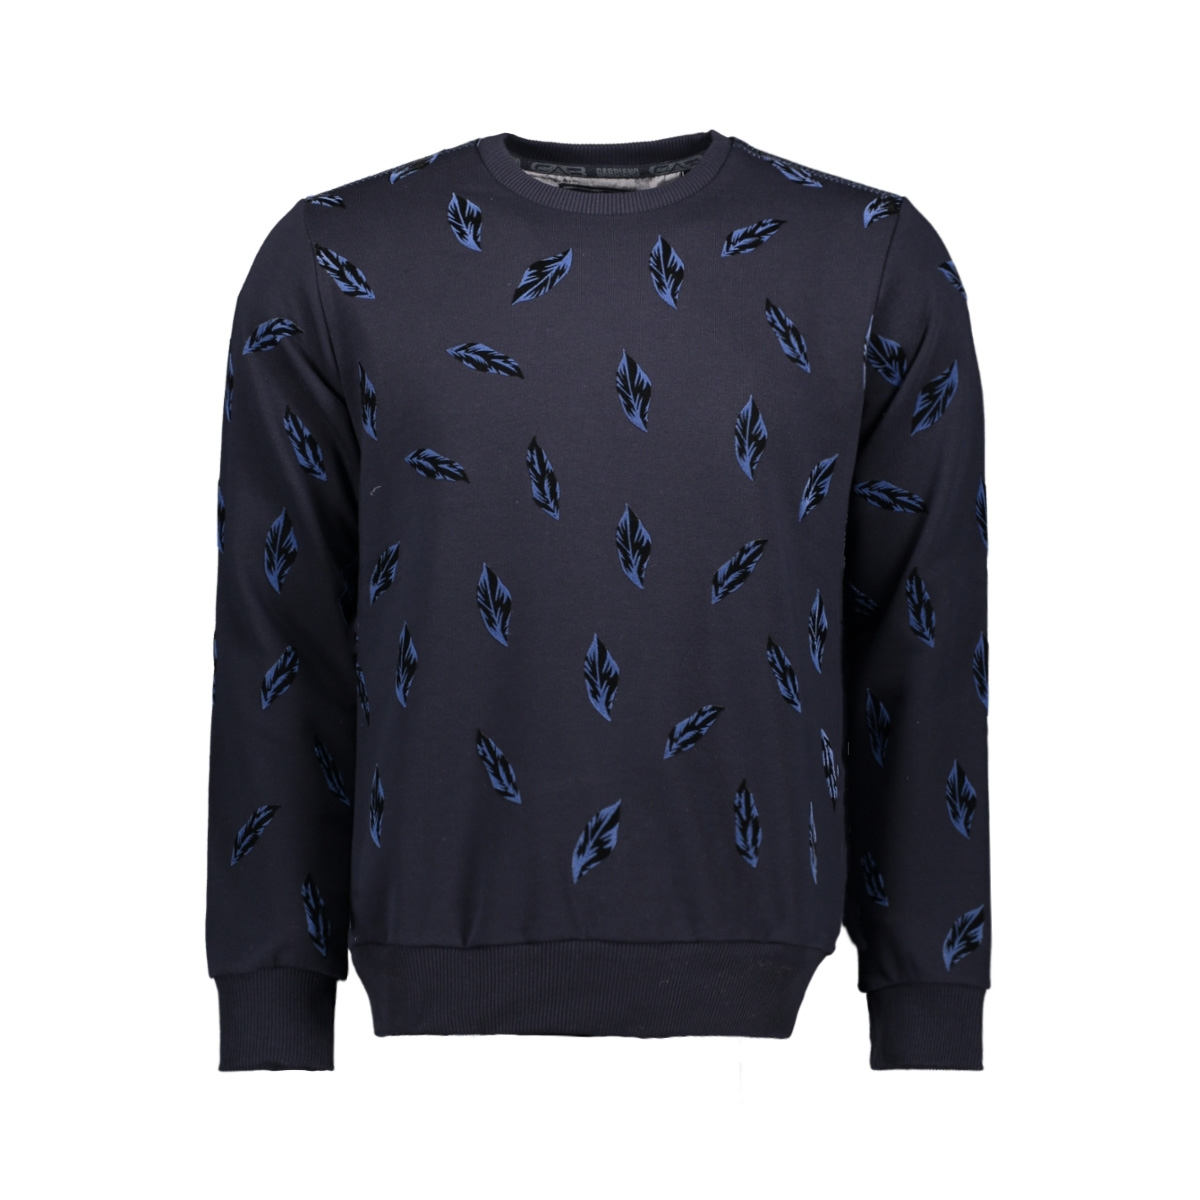 77093 sweater gabbiano trui navy